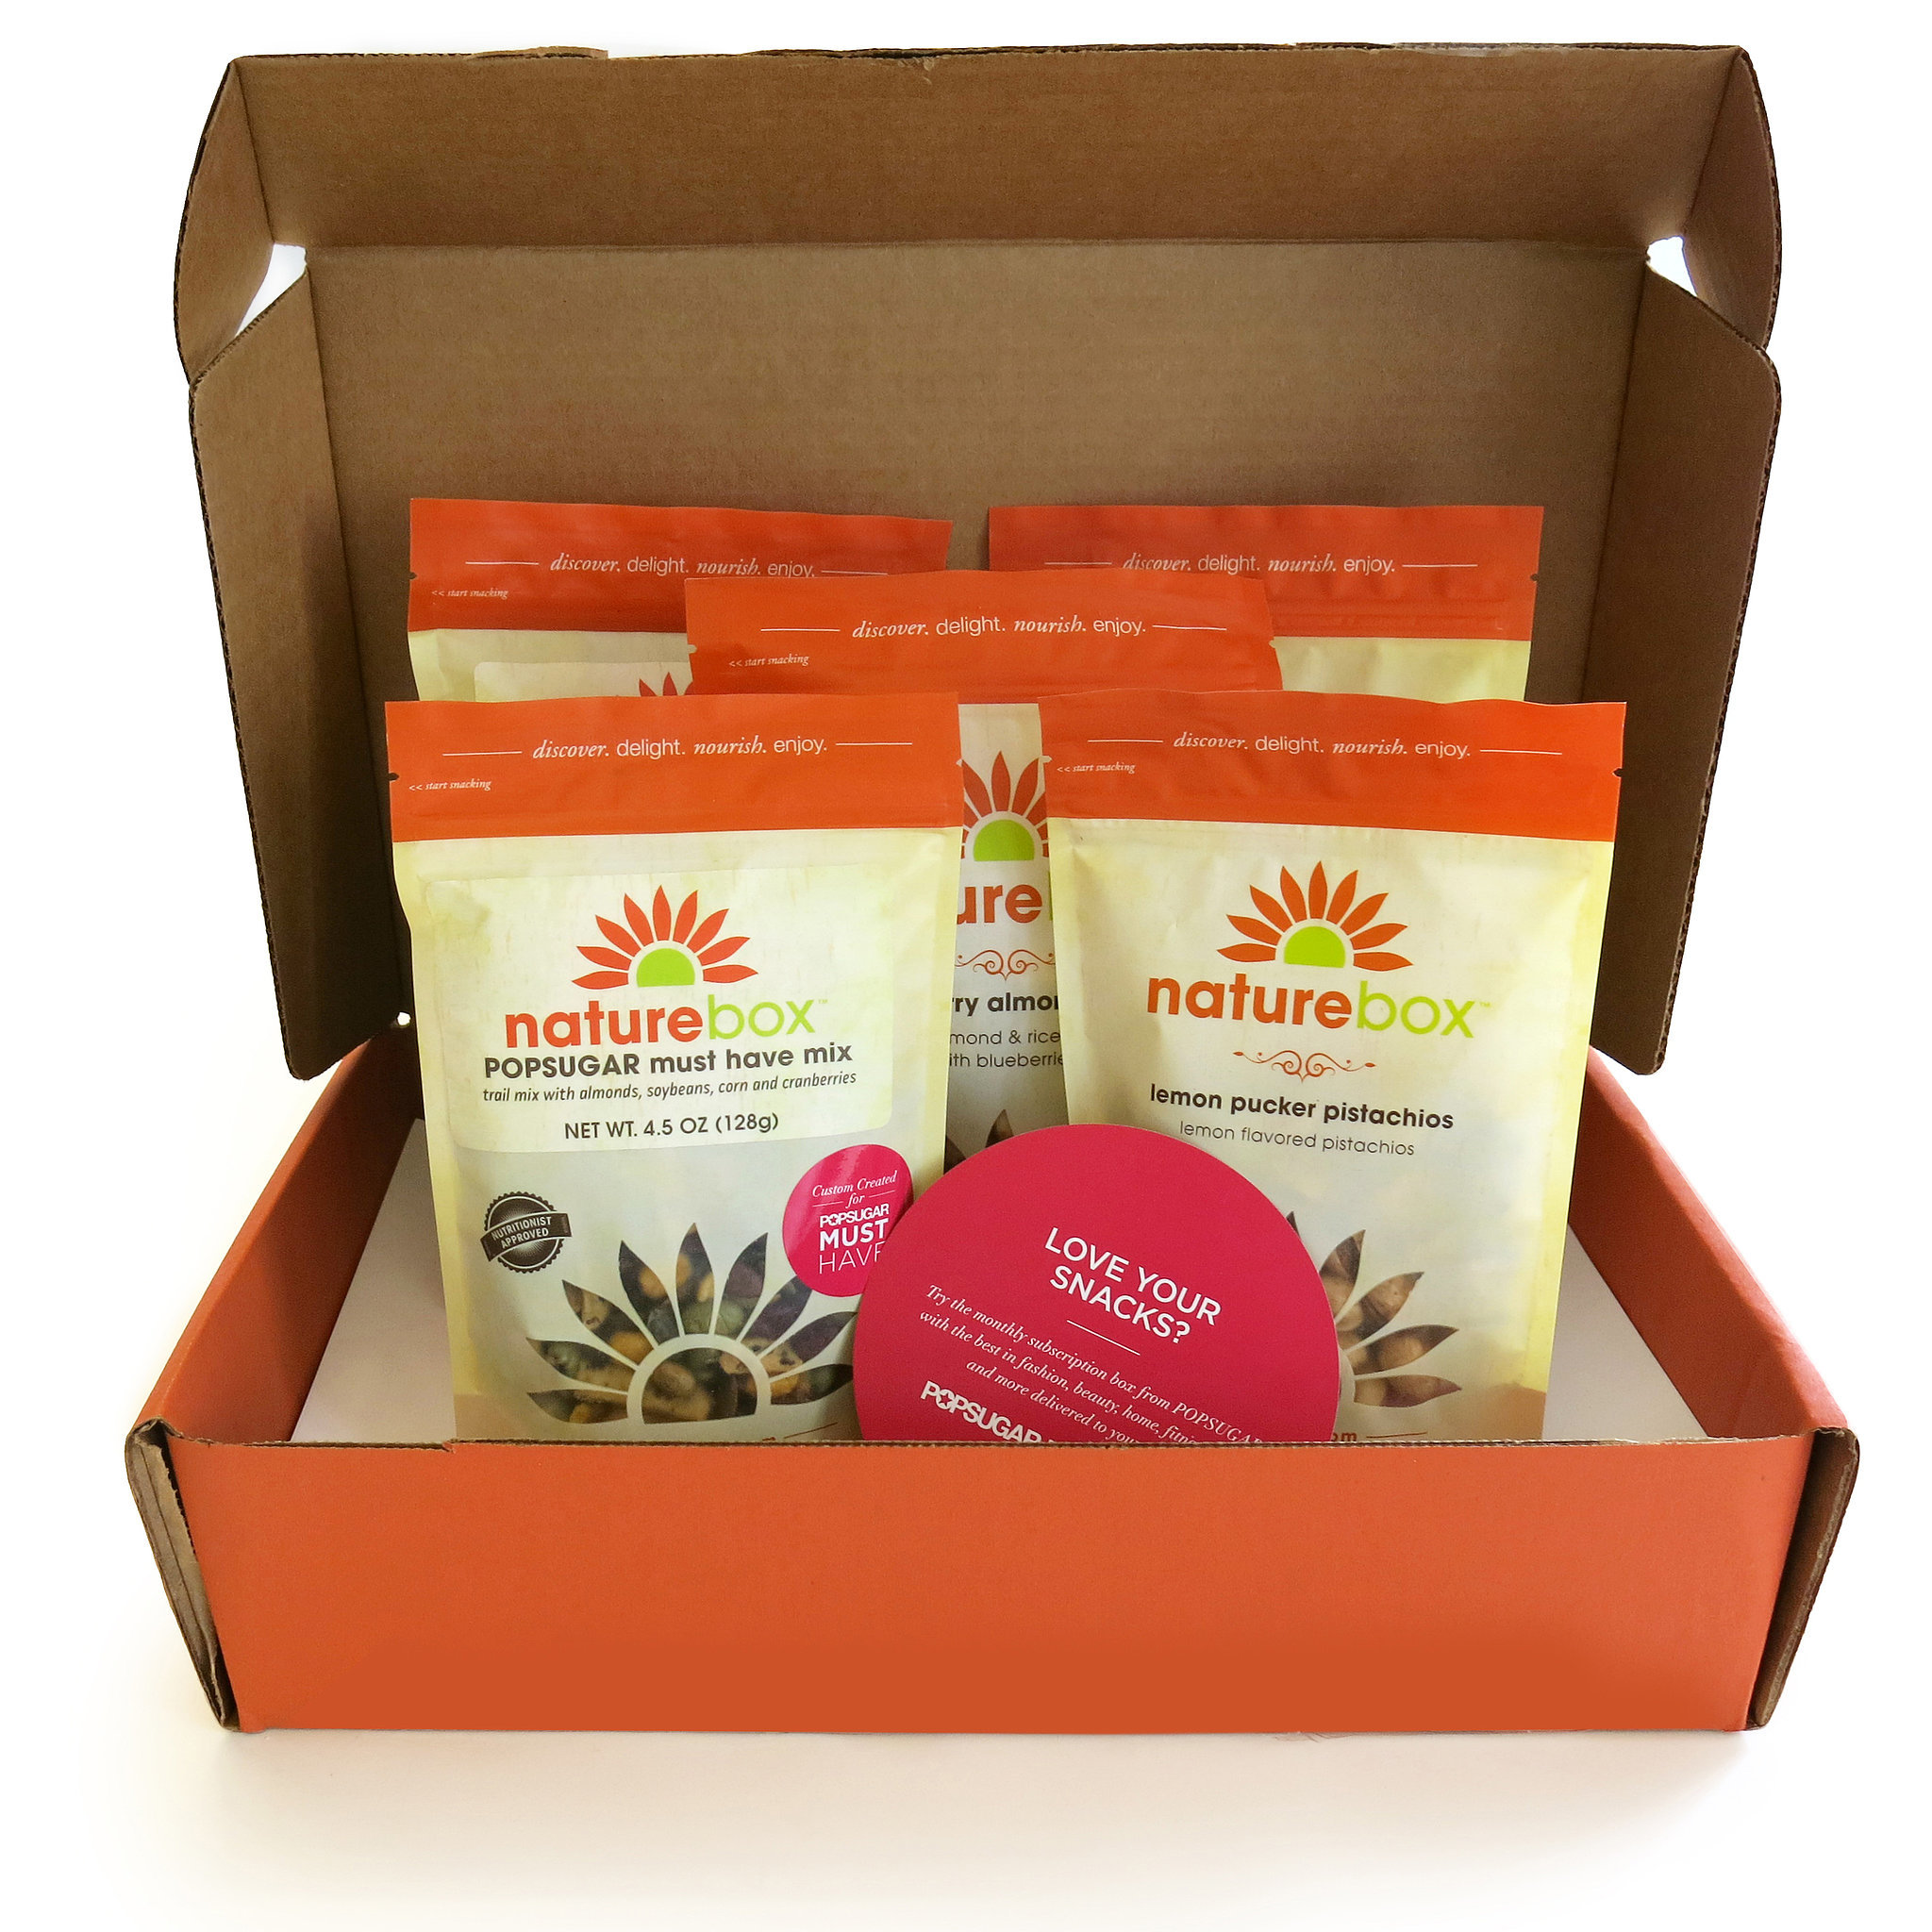 The latest Tweets from NatureBox (@naturebox). We make smart, delicious snacking easy. Discover over bold, satisfying choices delivered right to your door. #naturebox. U.S.A + CanadaAccount Status: Verified.